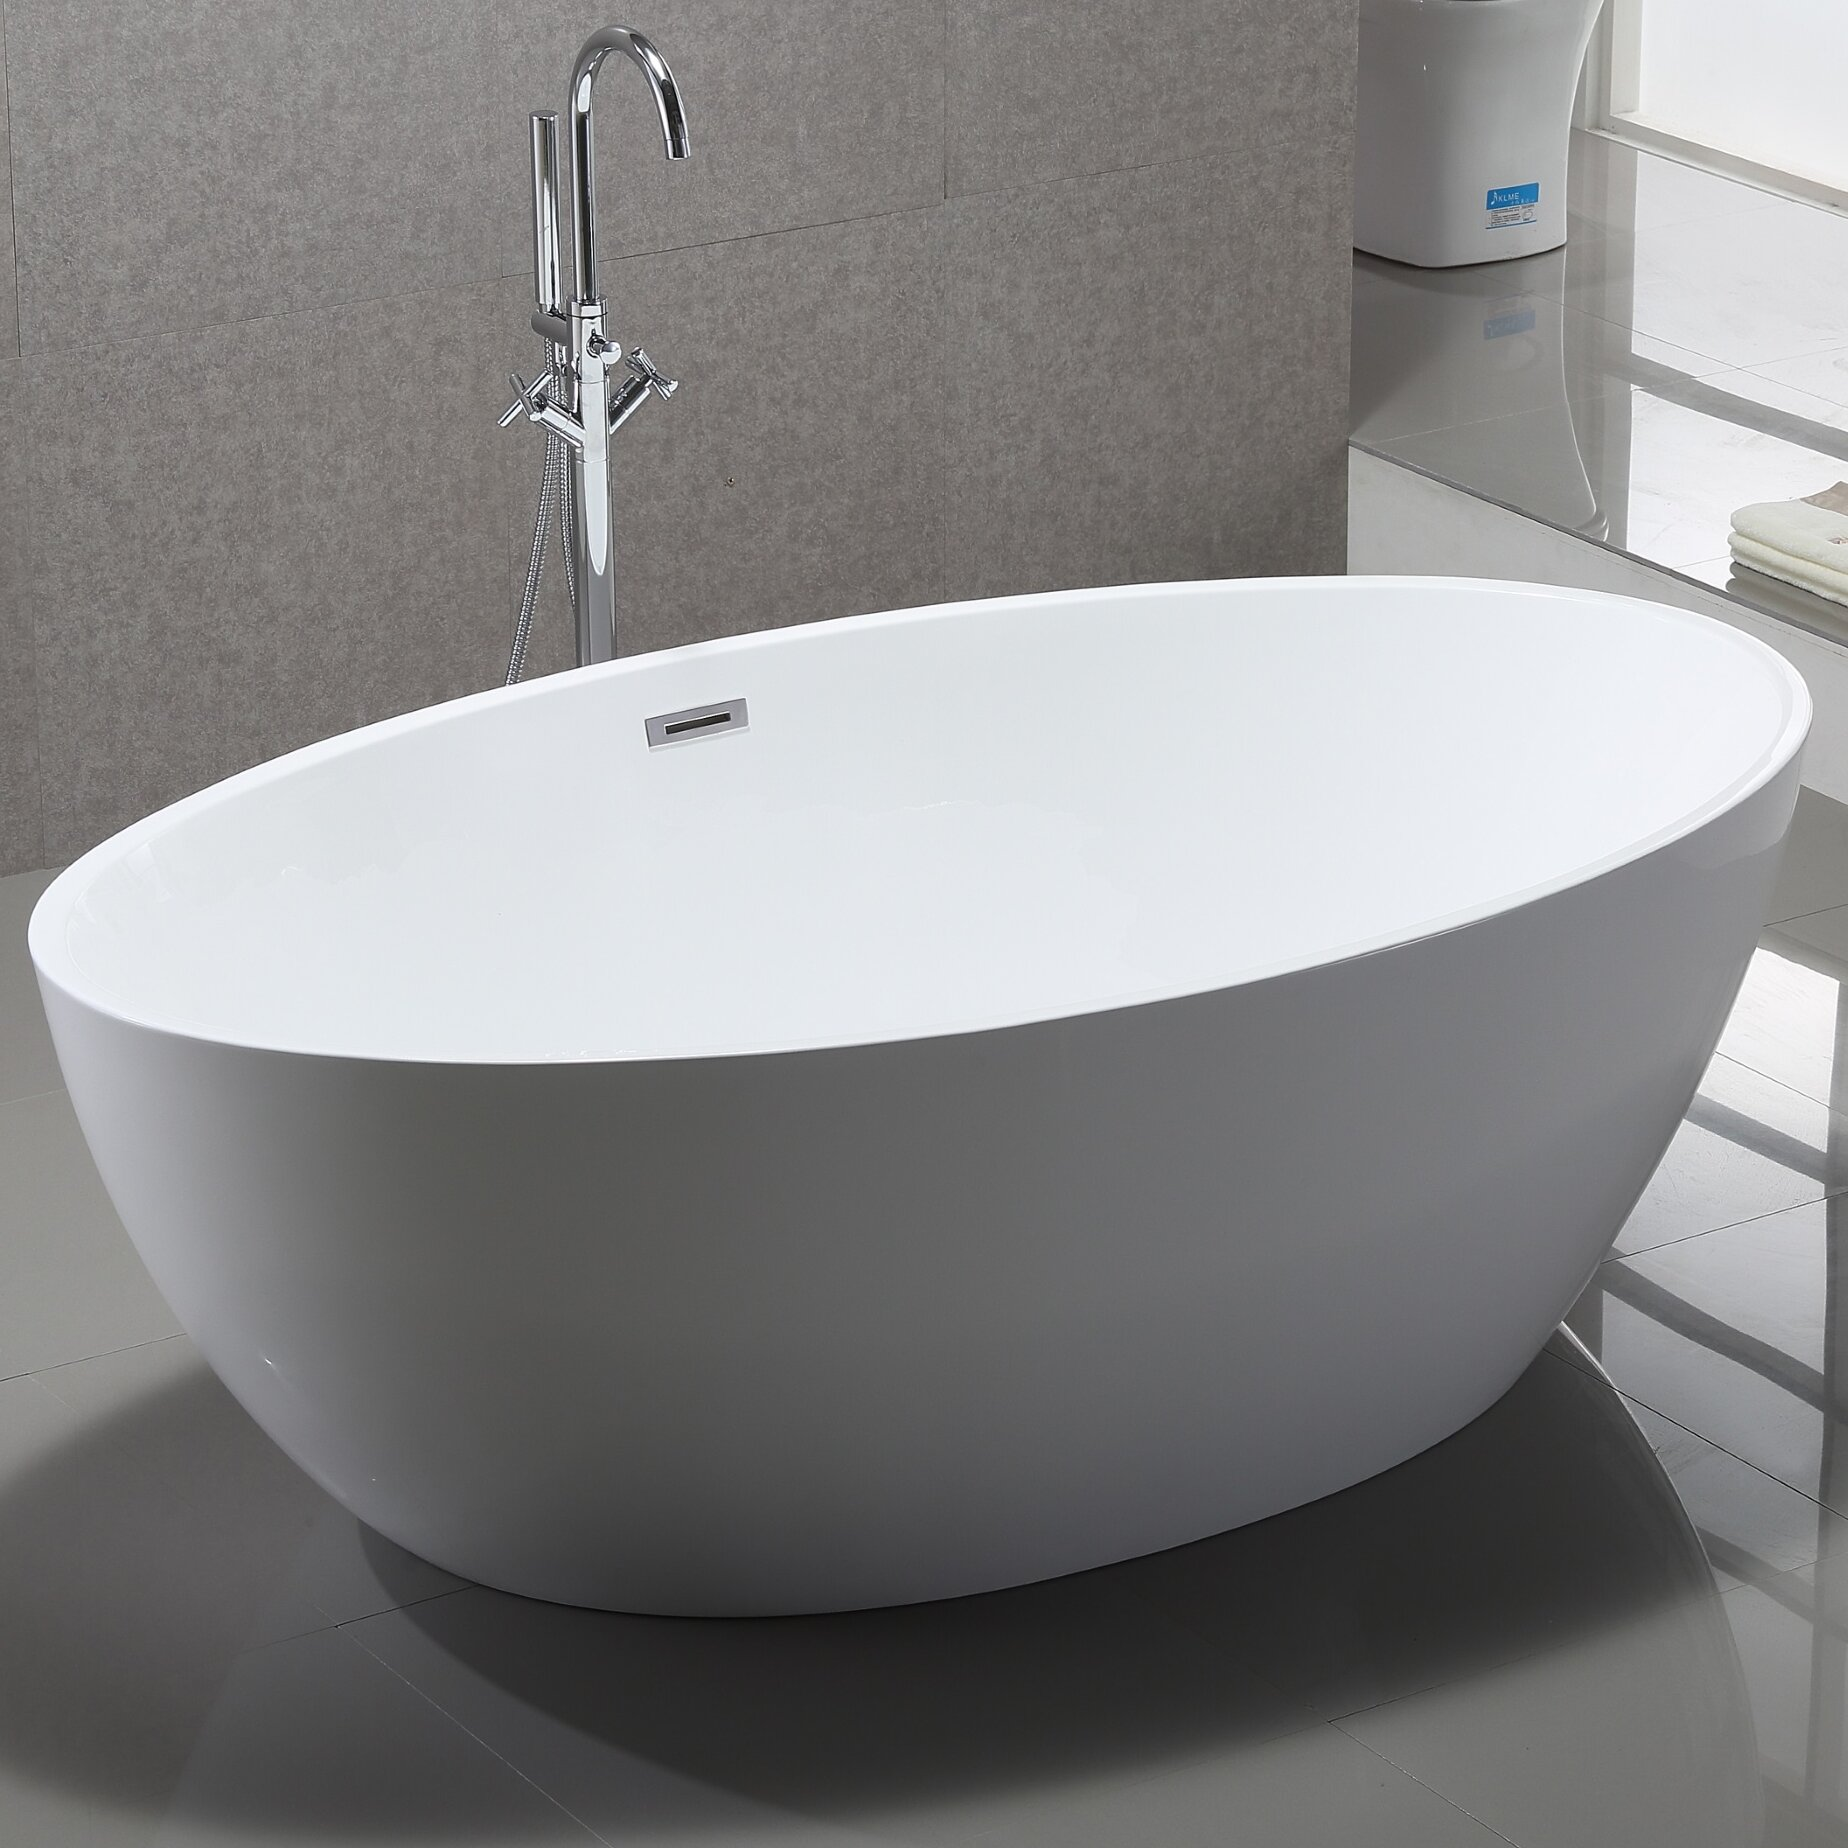 Vanityart 69 x 39 freestanding soaking bathtub for Best freestanding tub material